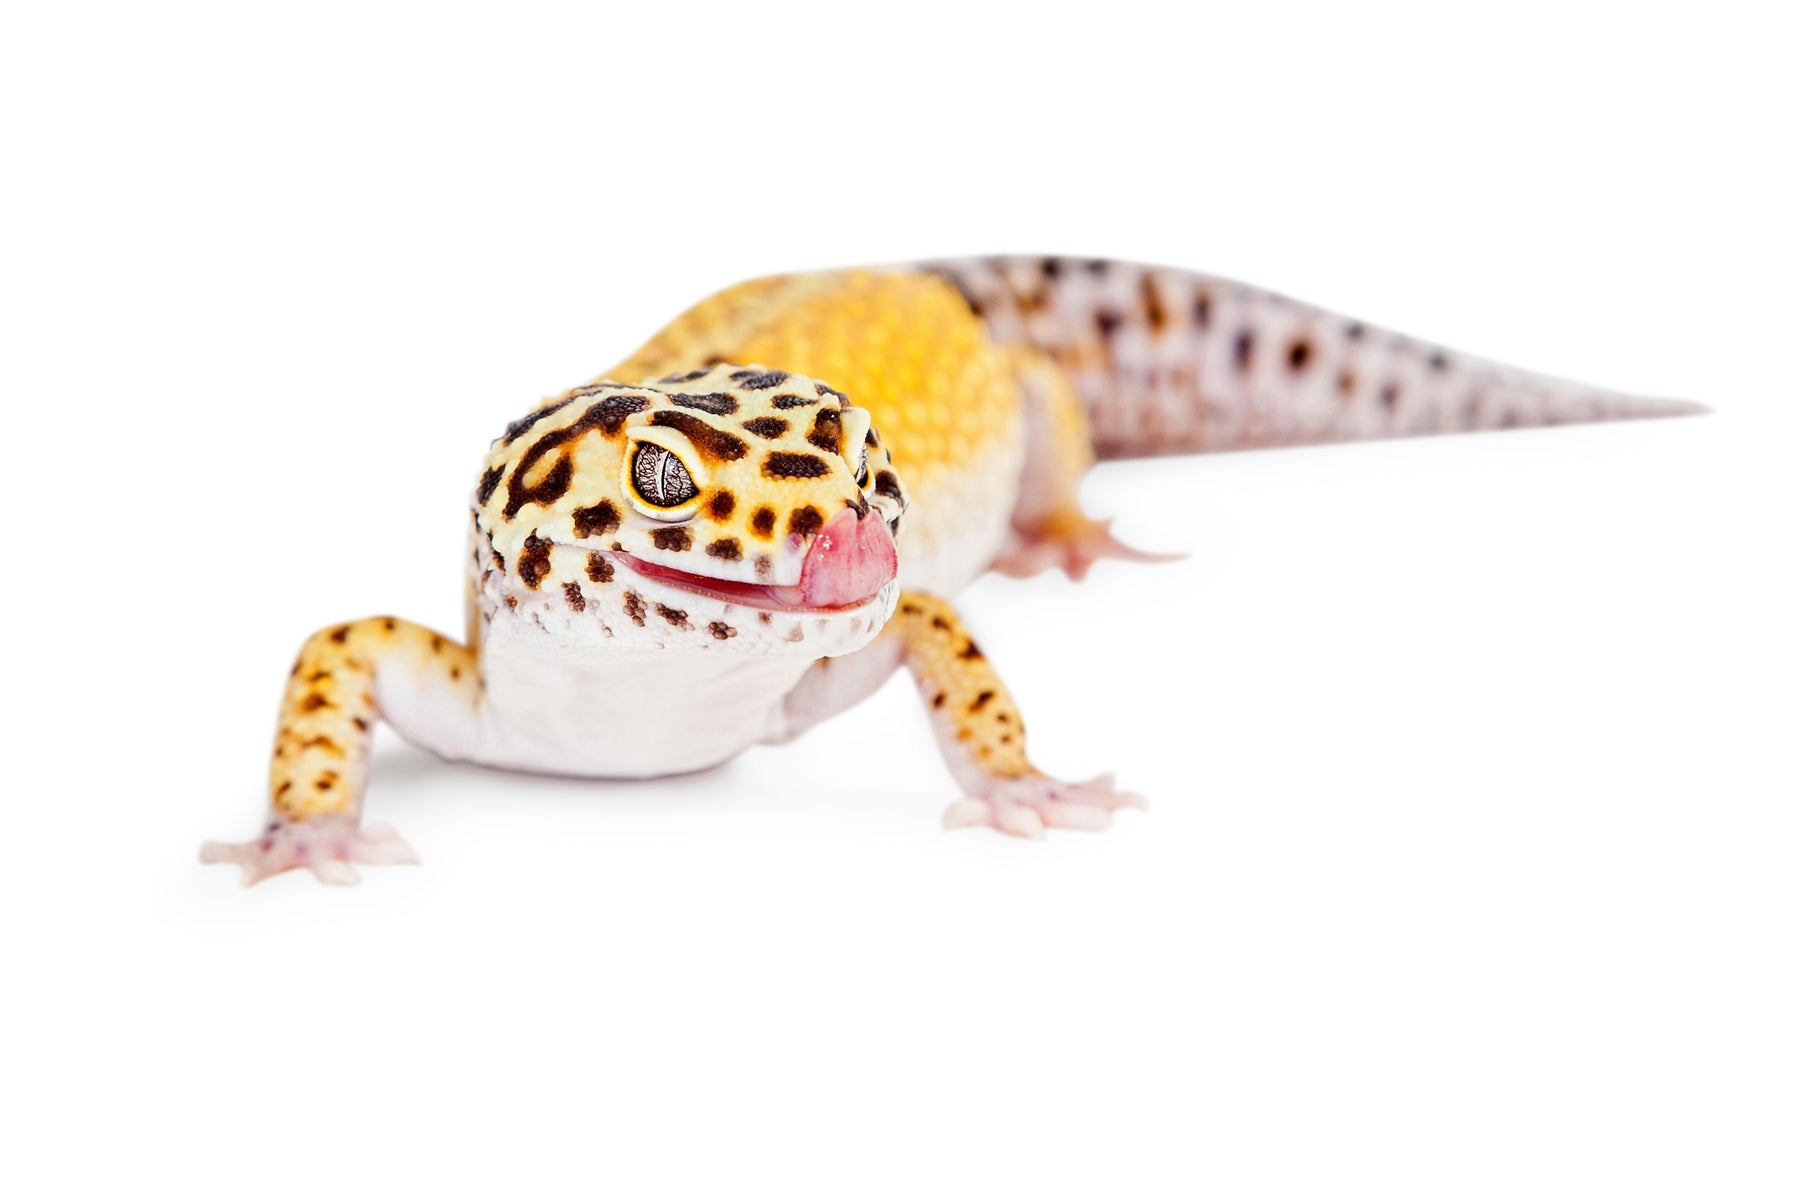 How Long Can Leopard Geckos Go Without Water?